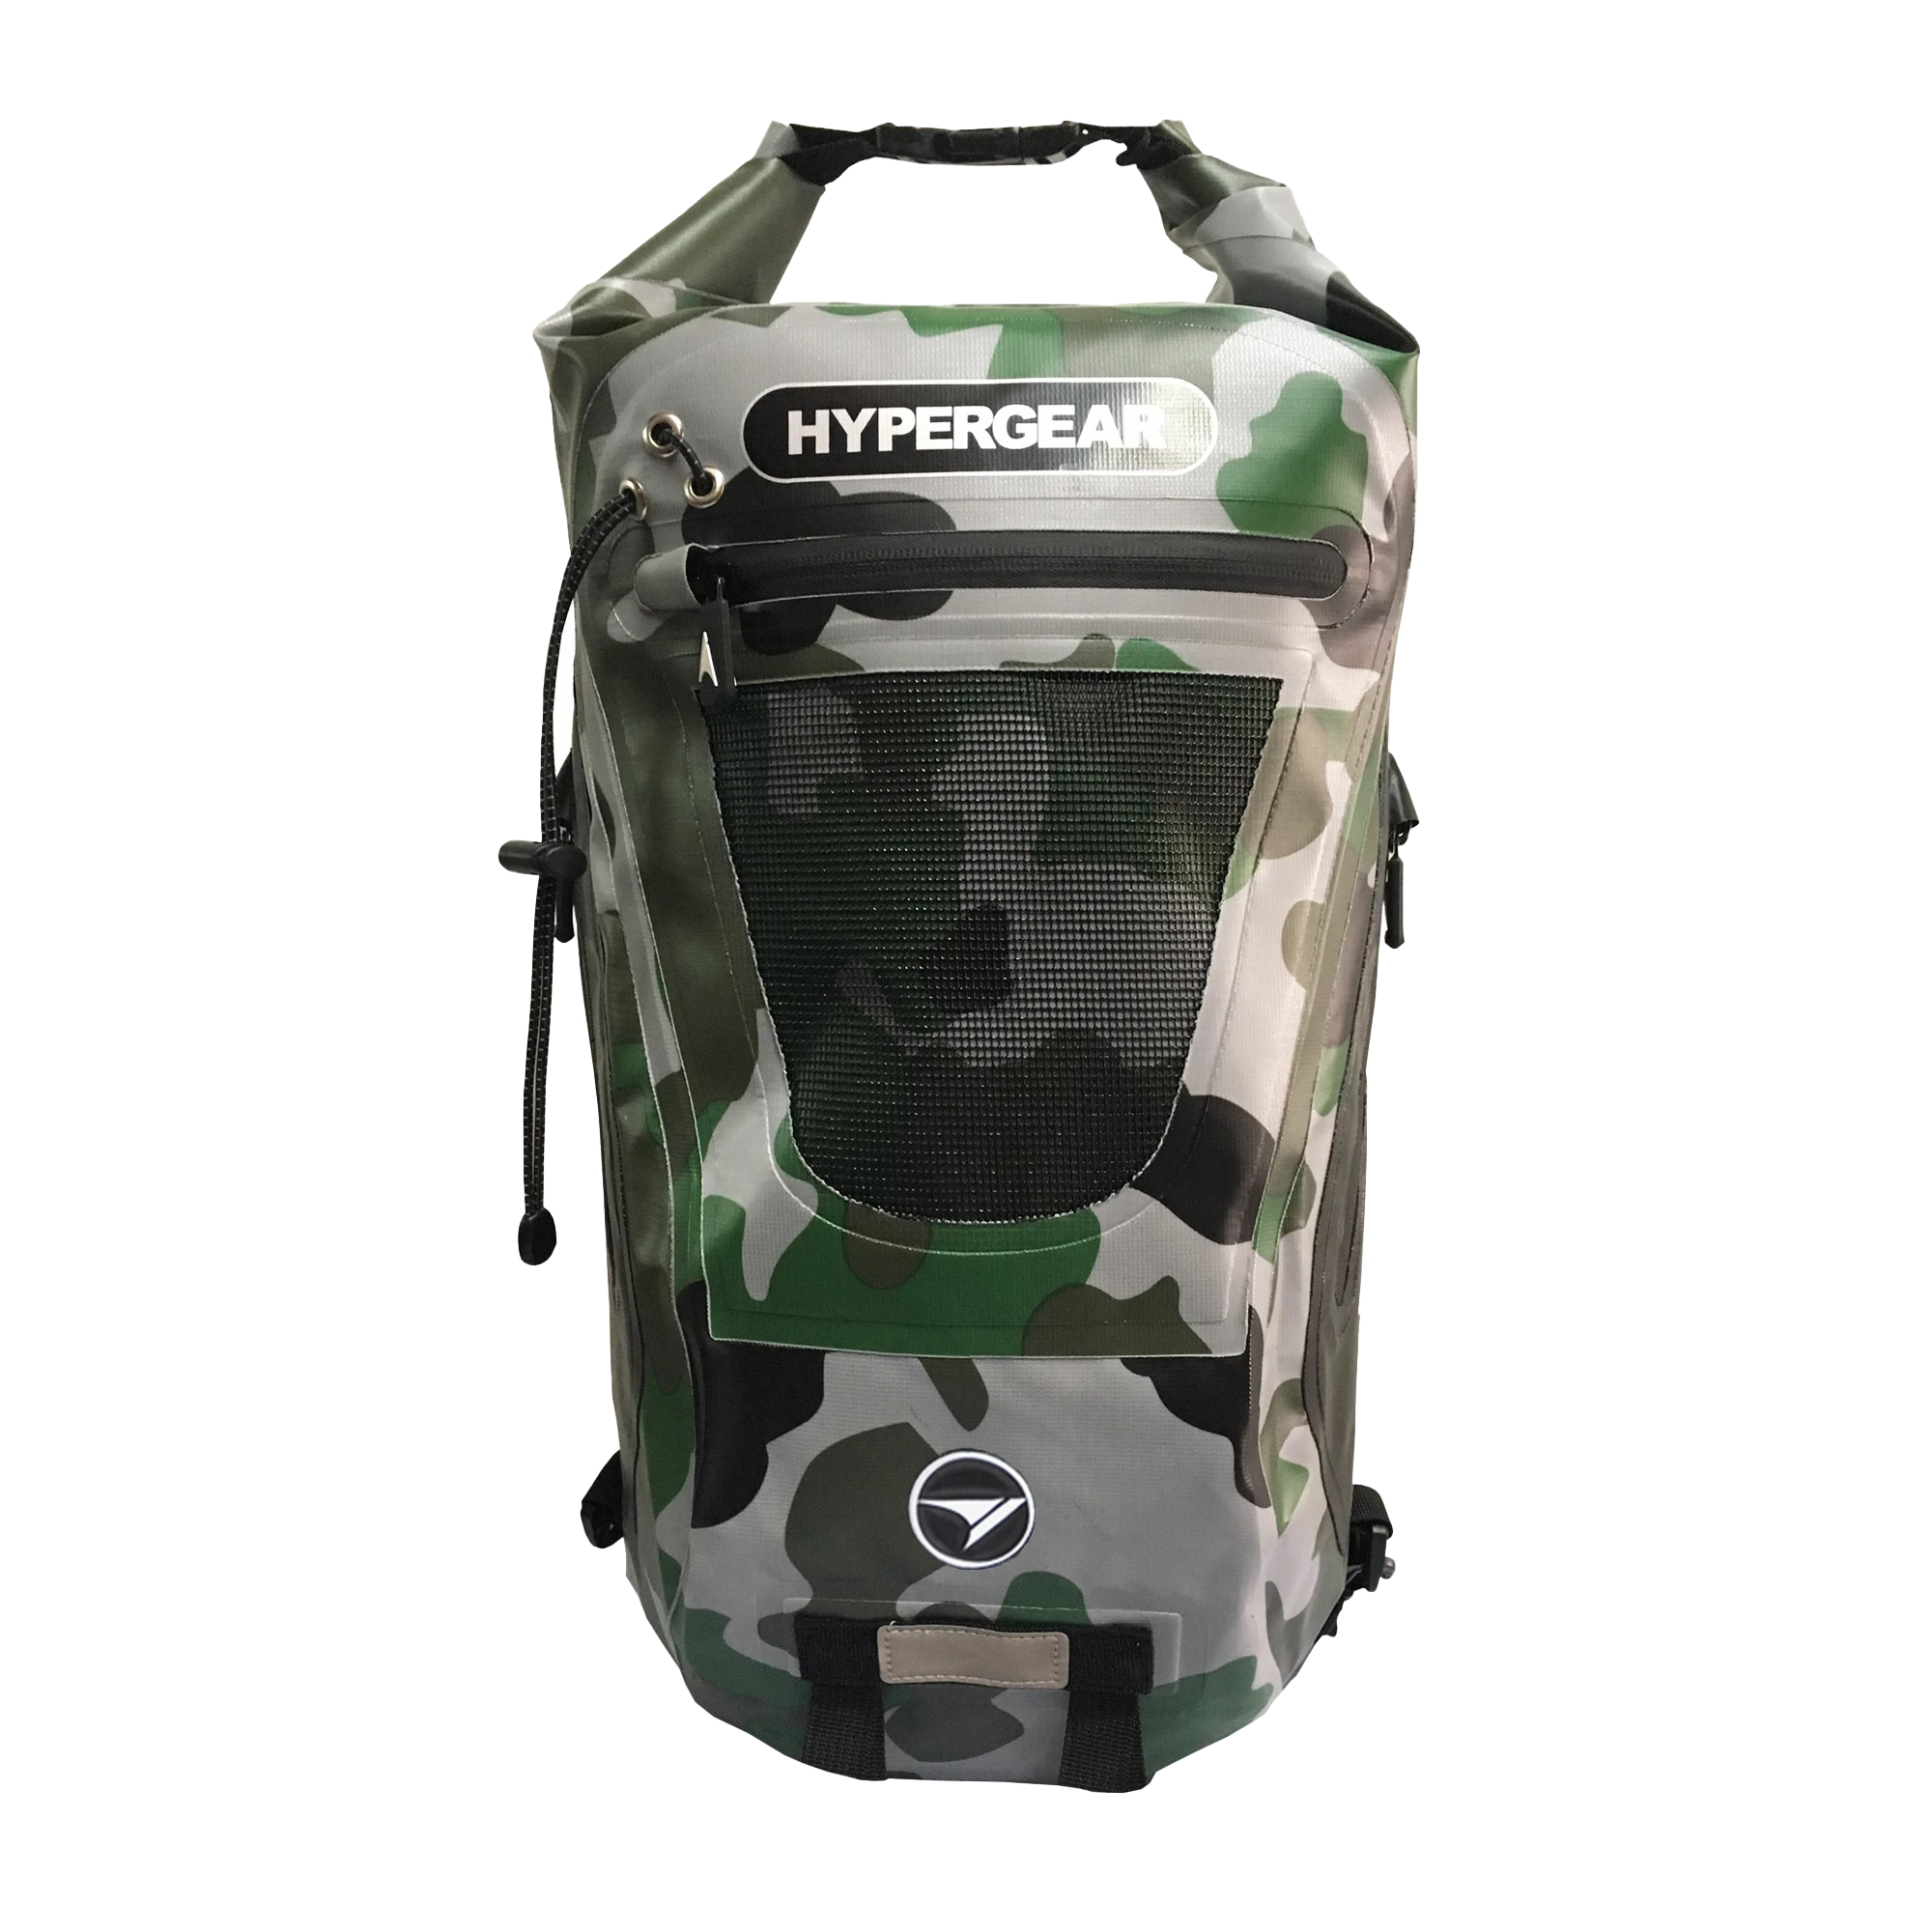 66 HYPERGEAR DRY PAC TOUGH 20L CAMOUFLAGE GREY DELTA.png